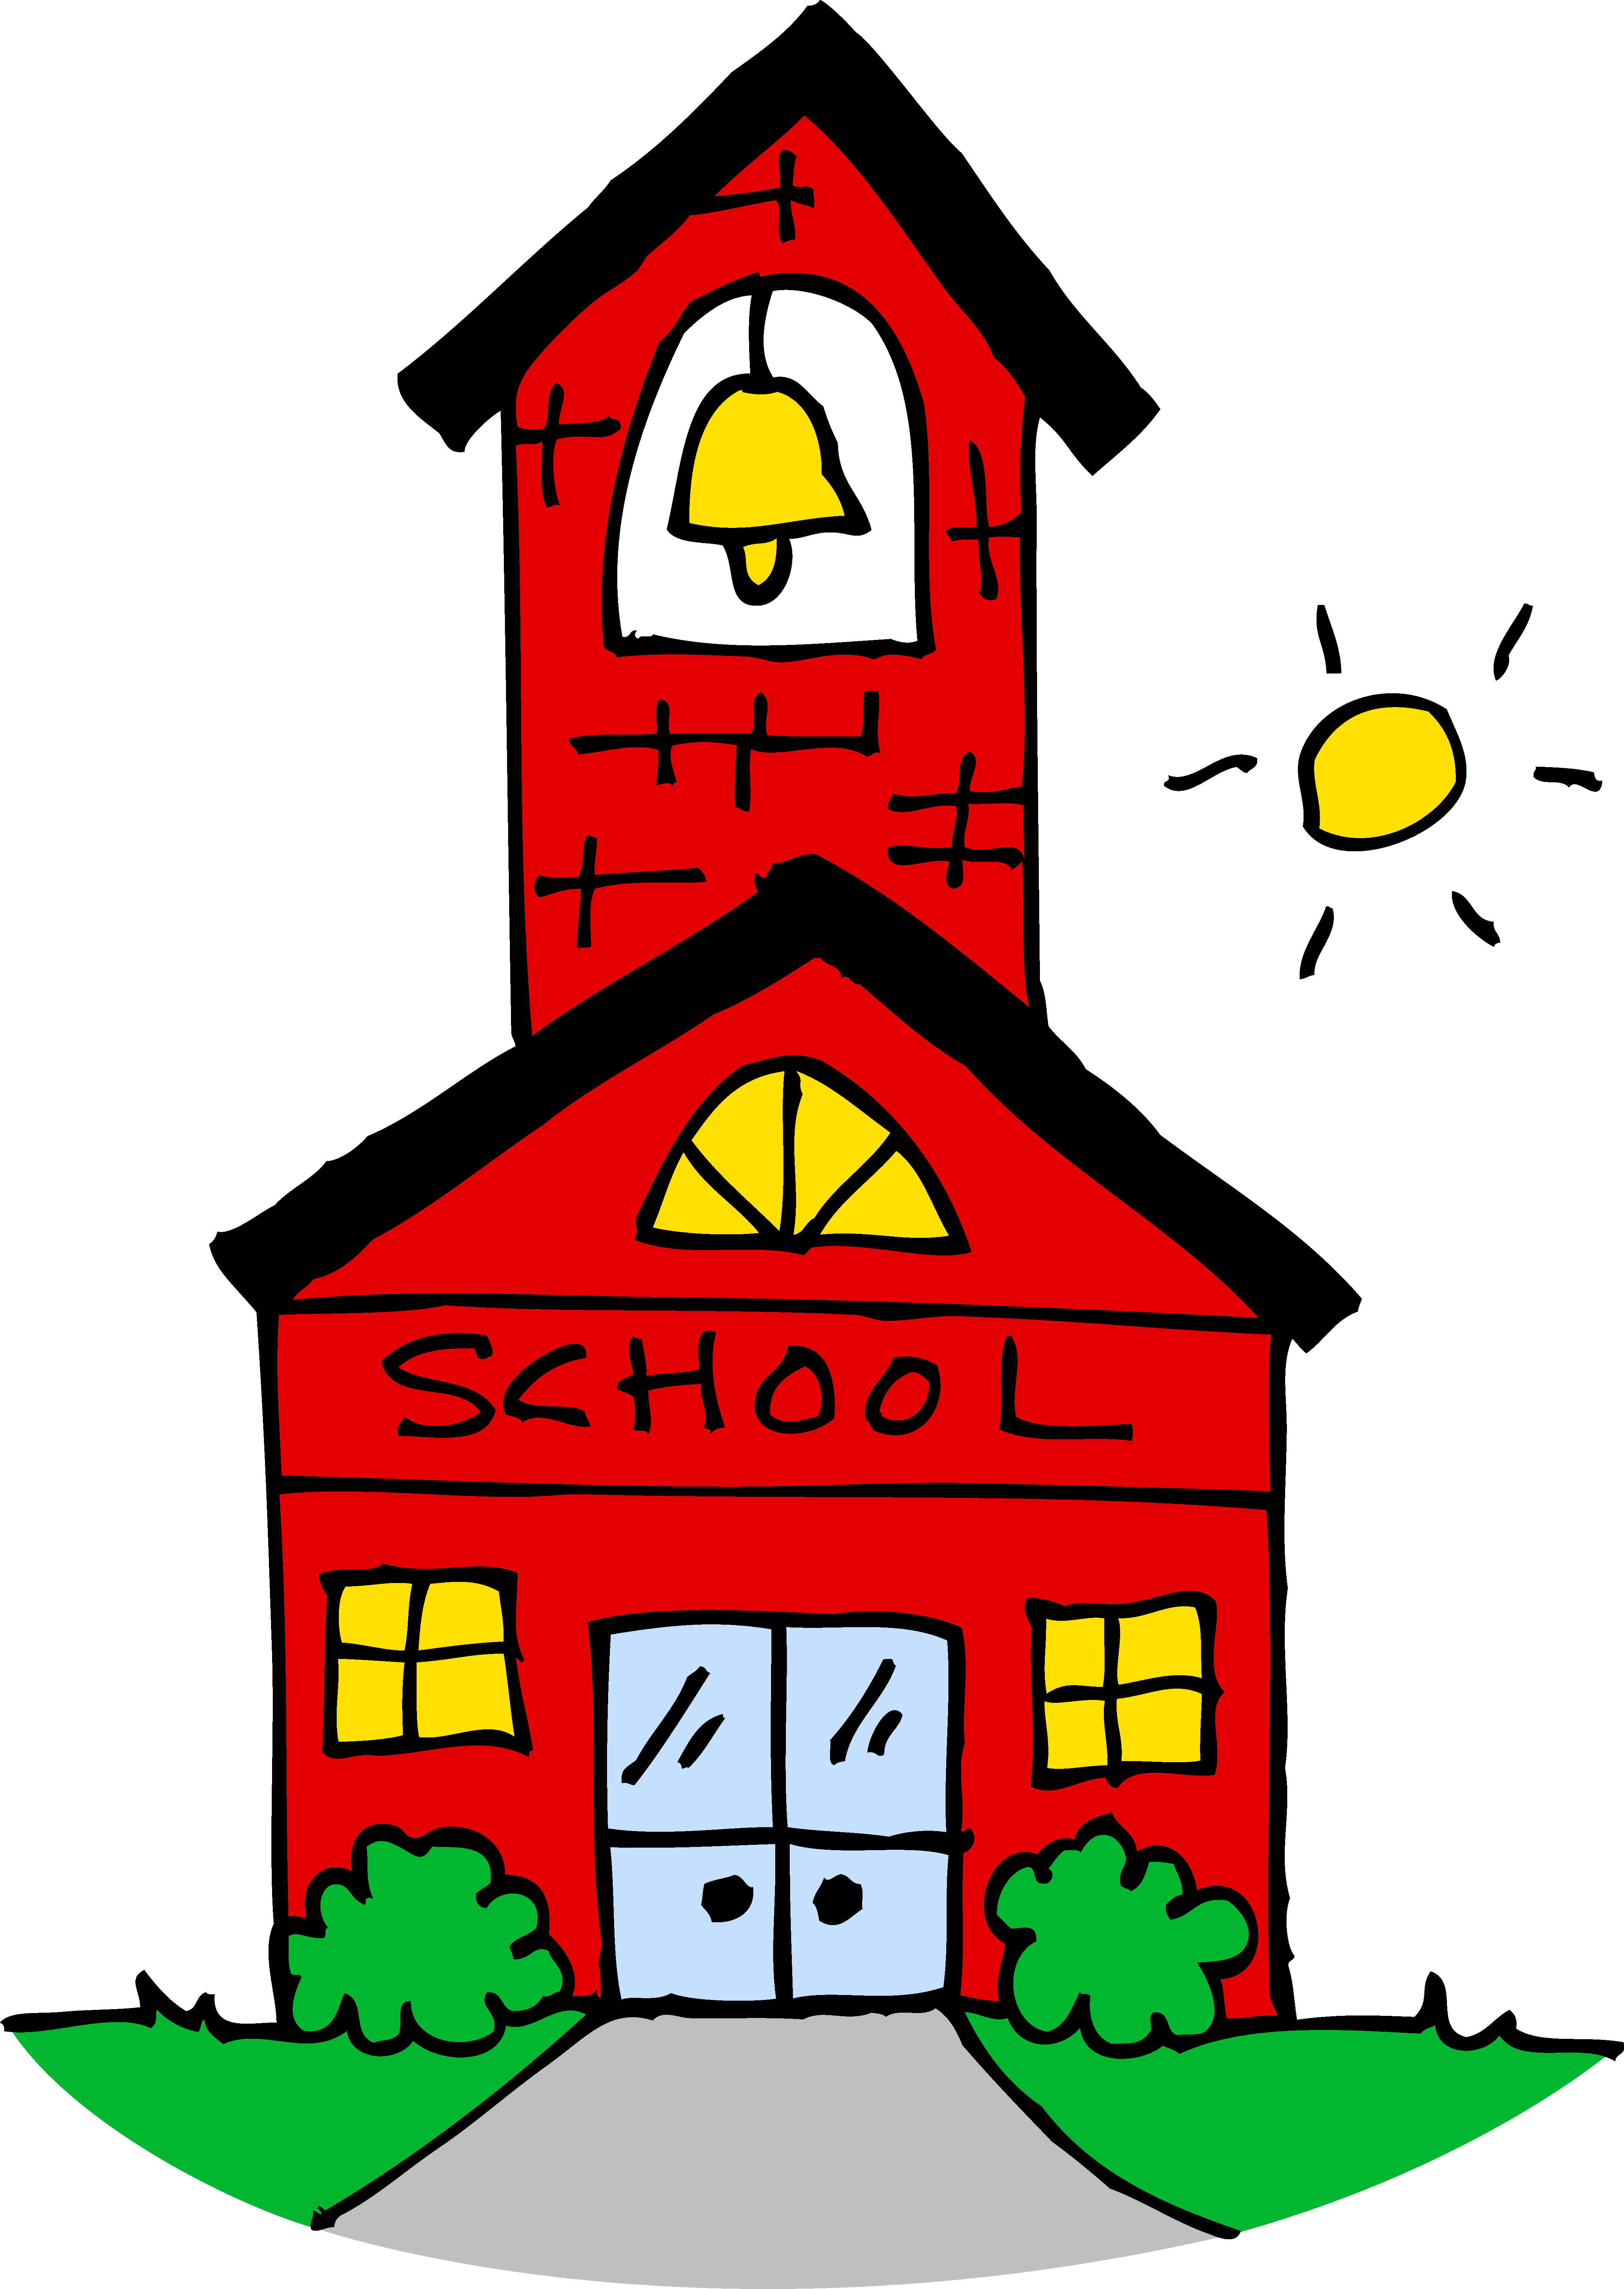 Elementary school png. Collection of clipart